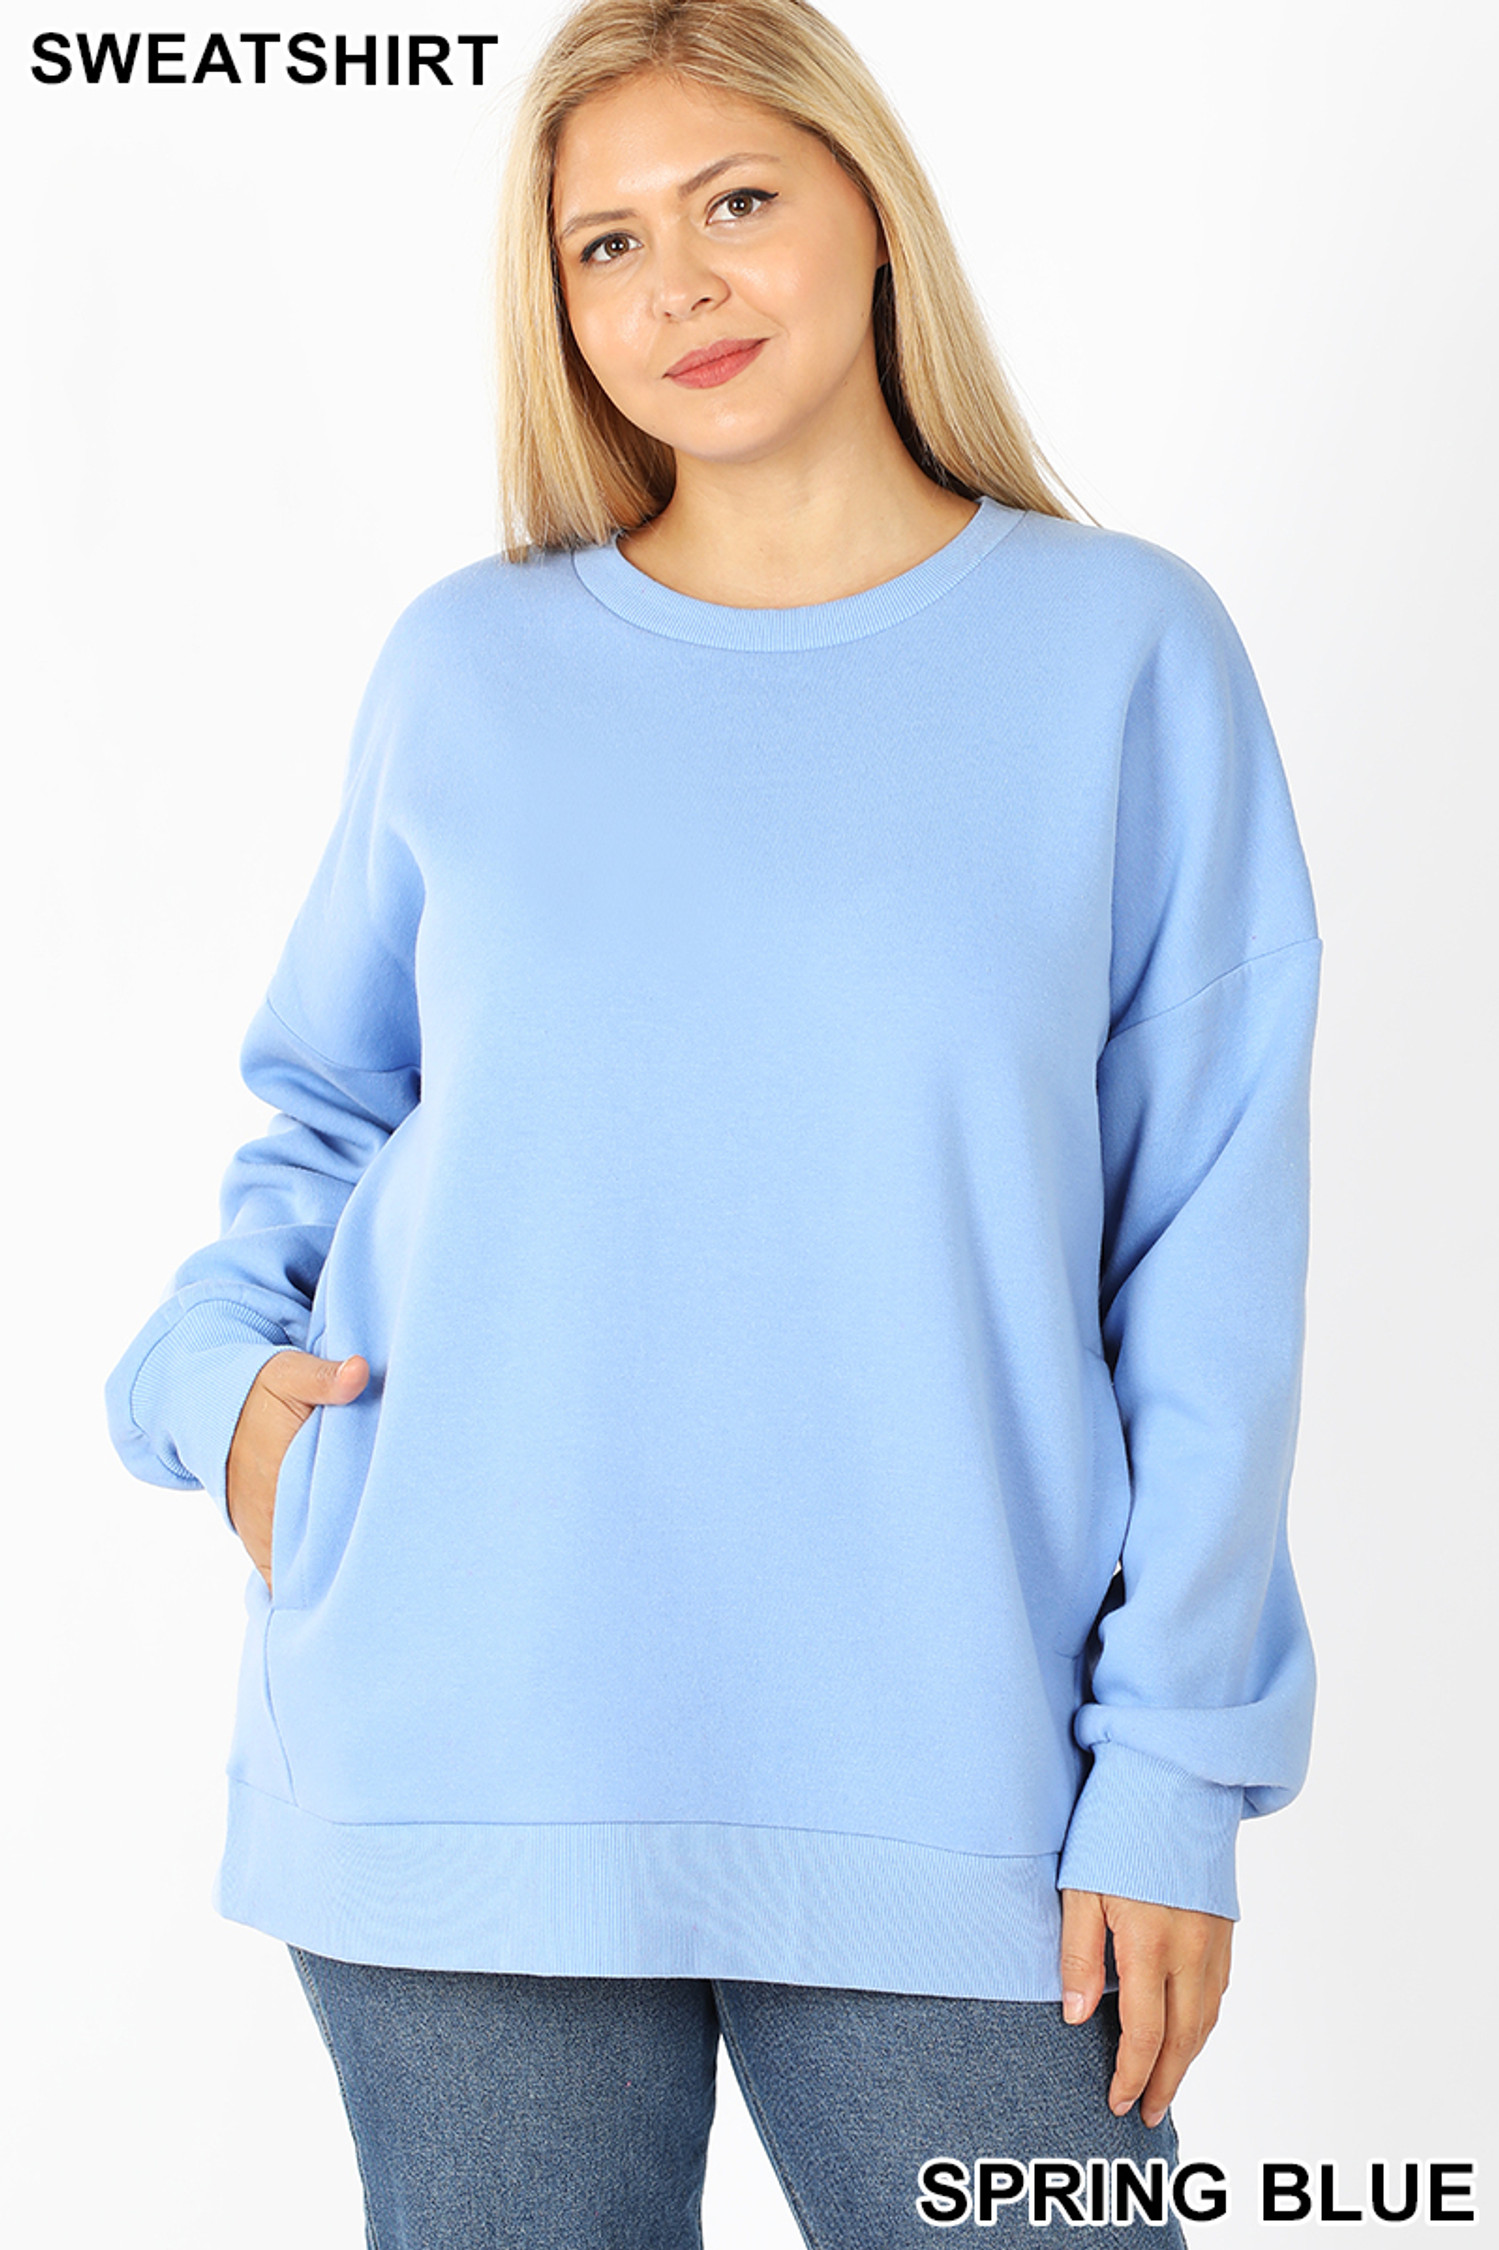 Front image of Spring Blue Cotton Round Crew Neck Plus Size Sweatshirt with Side Pockets